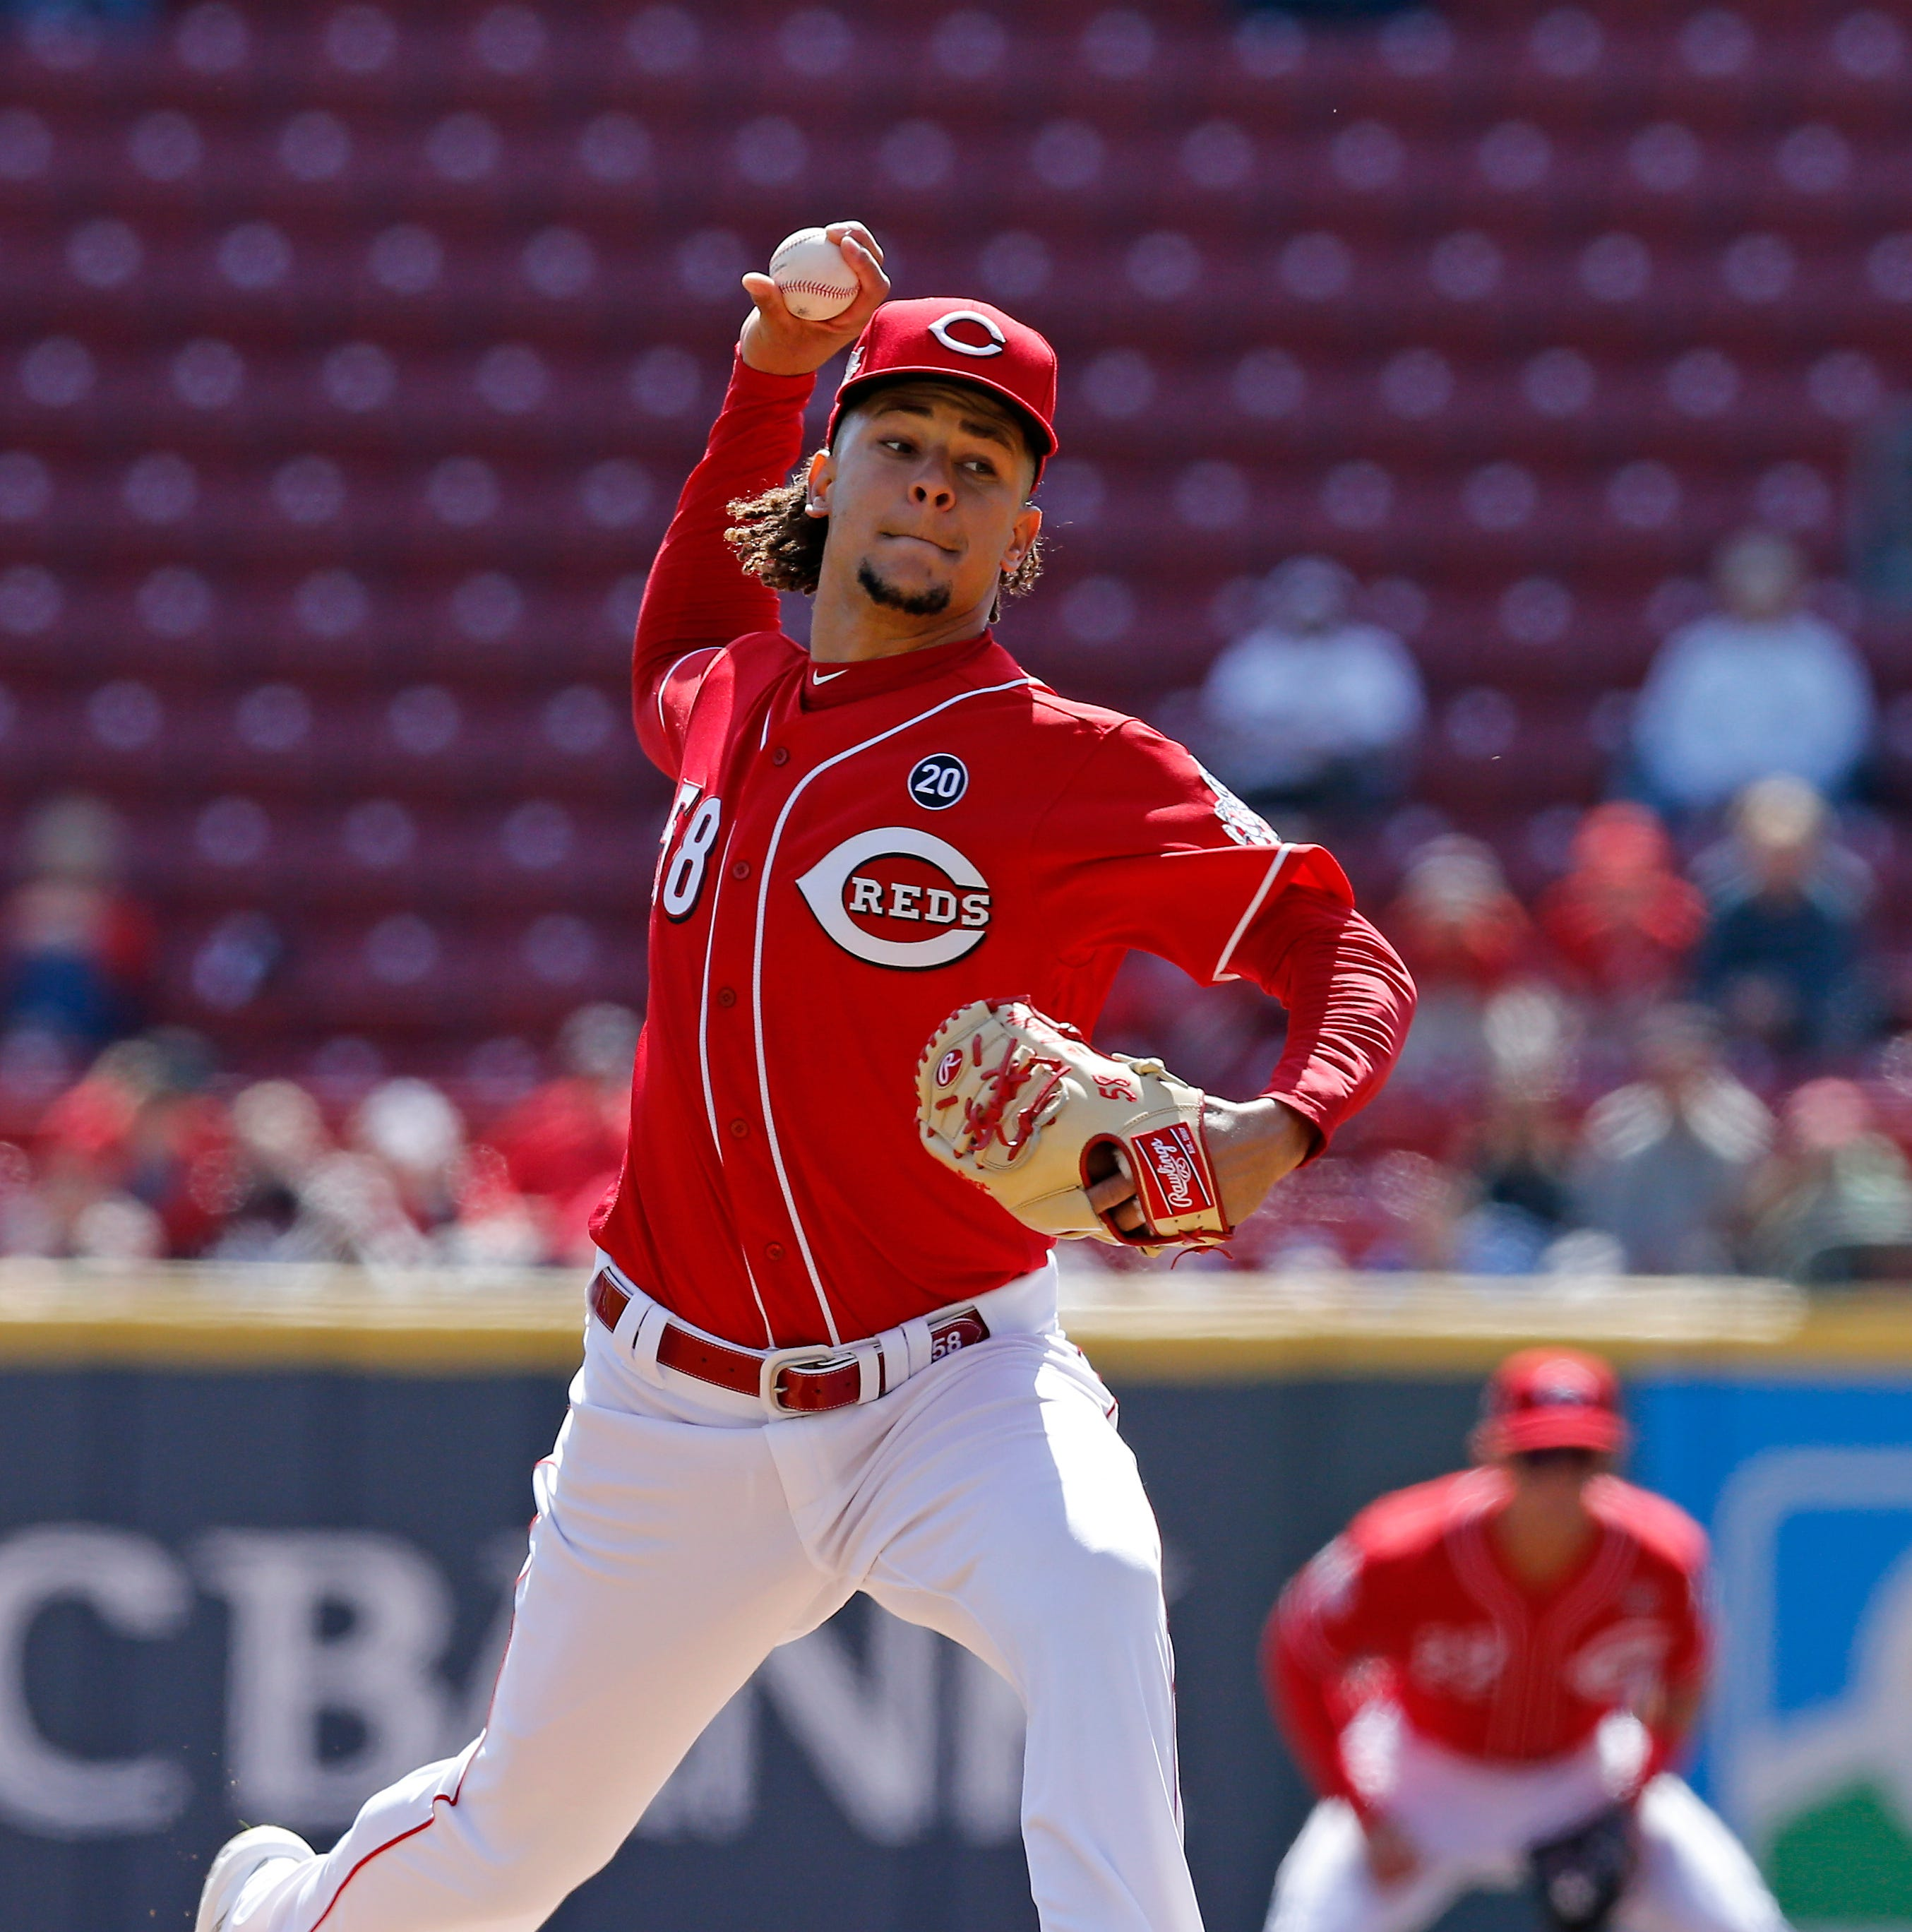 Cincinnati Reds 1-0 loss a rarity at Great American Ball Park